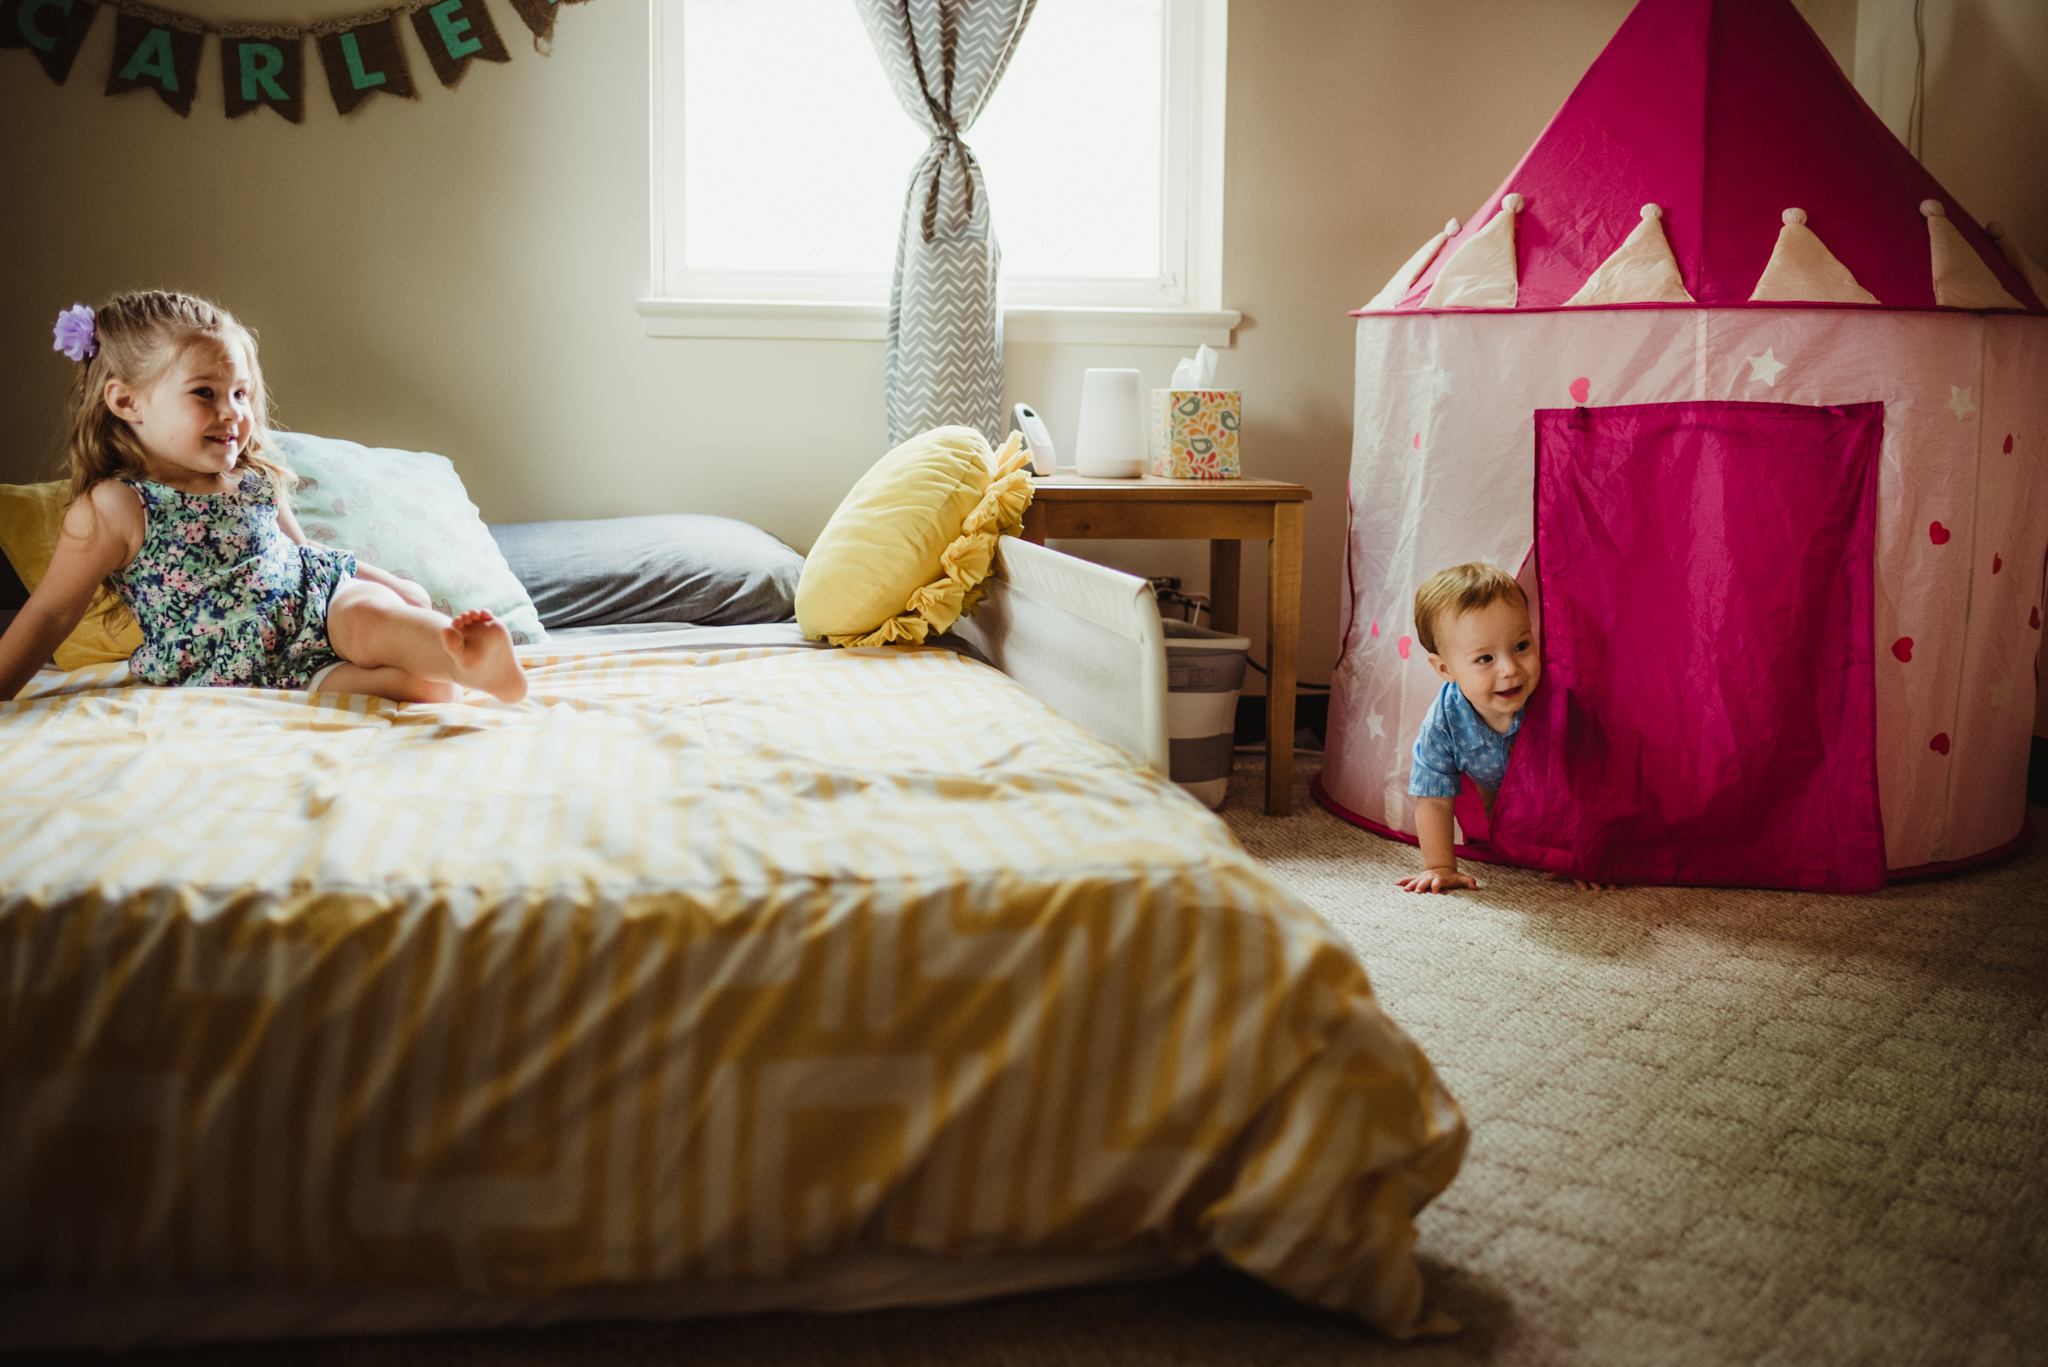 The kids play in the little girl's bedroom during their lifestyle session at home in Wake Forest with Rose Trail Images.